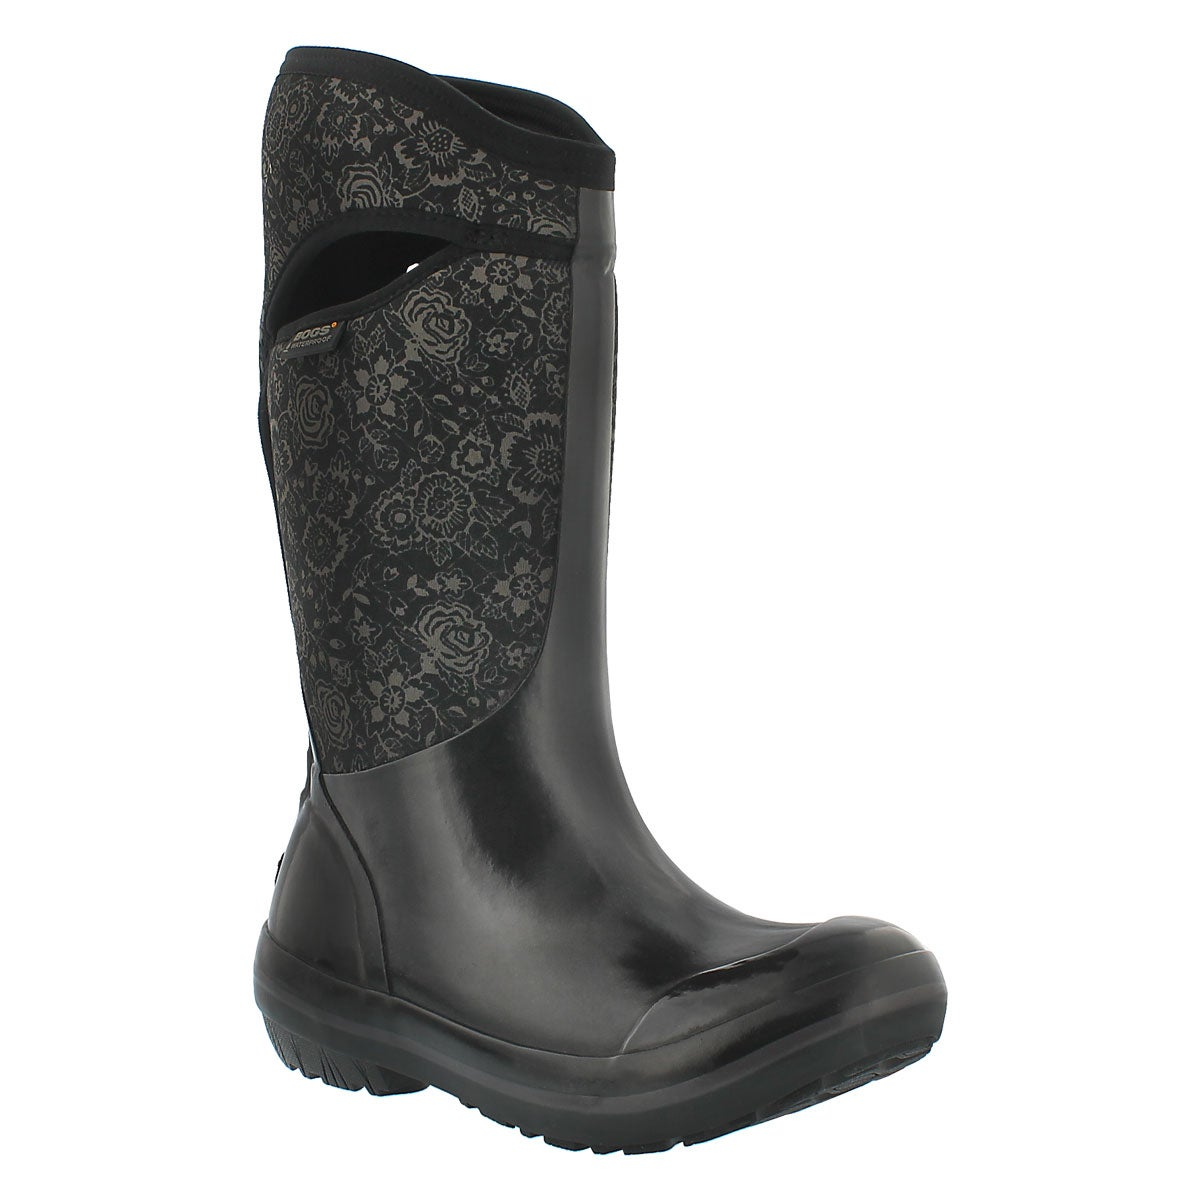 Women's PLIMS QUILTED FLORAL blk waterproof boots